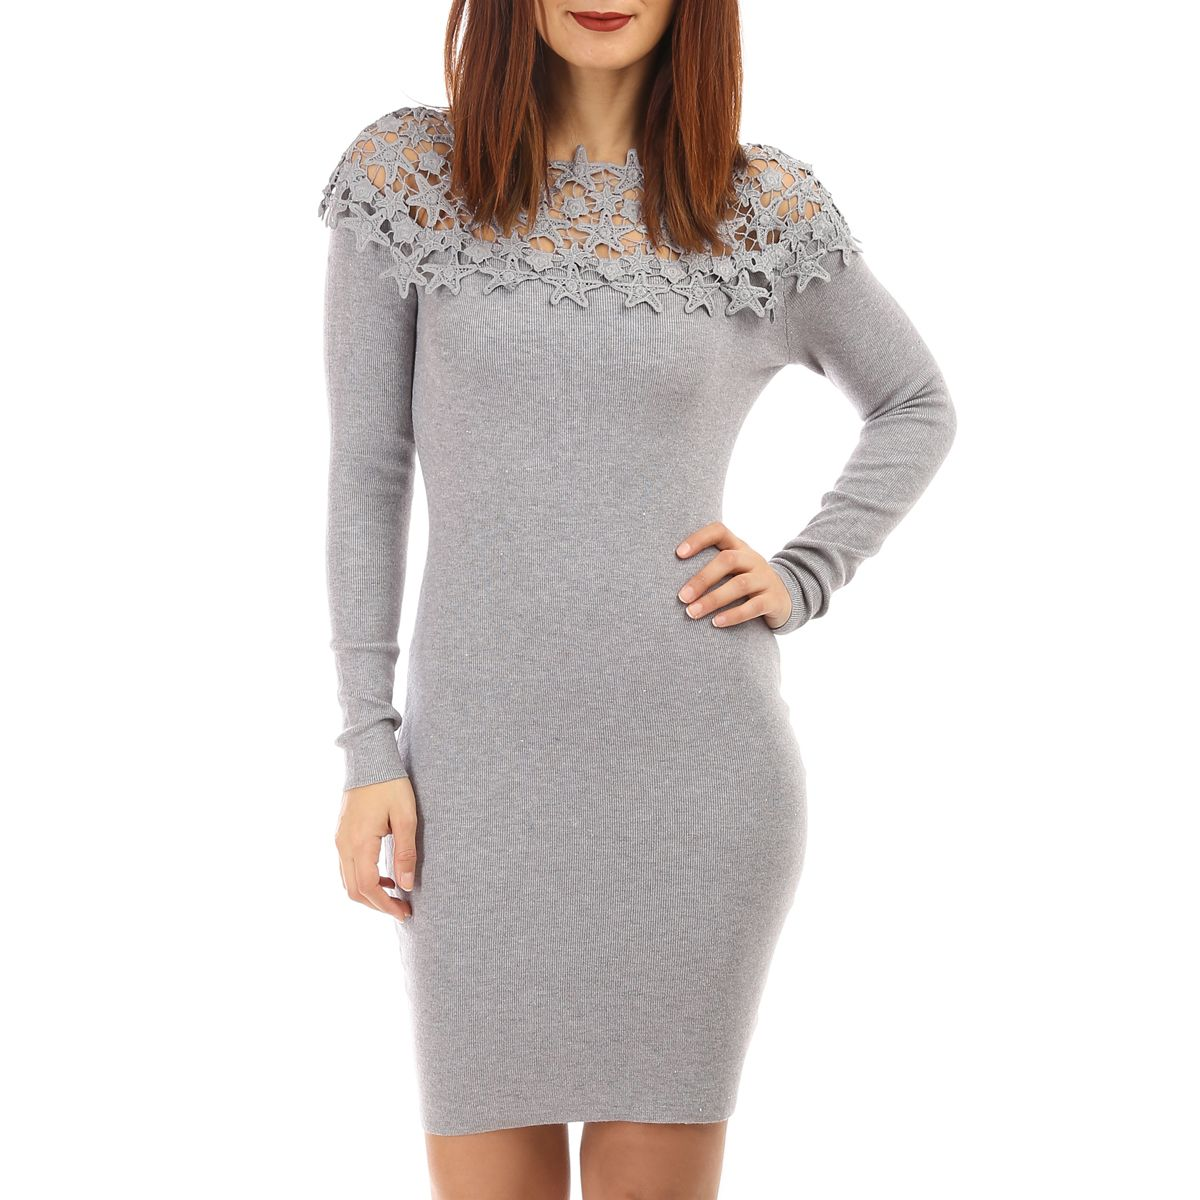 Robe pull grise avec broderies